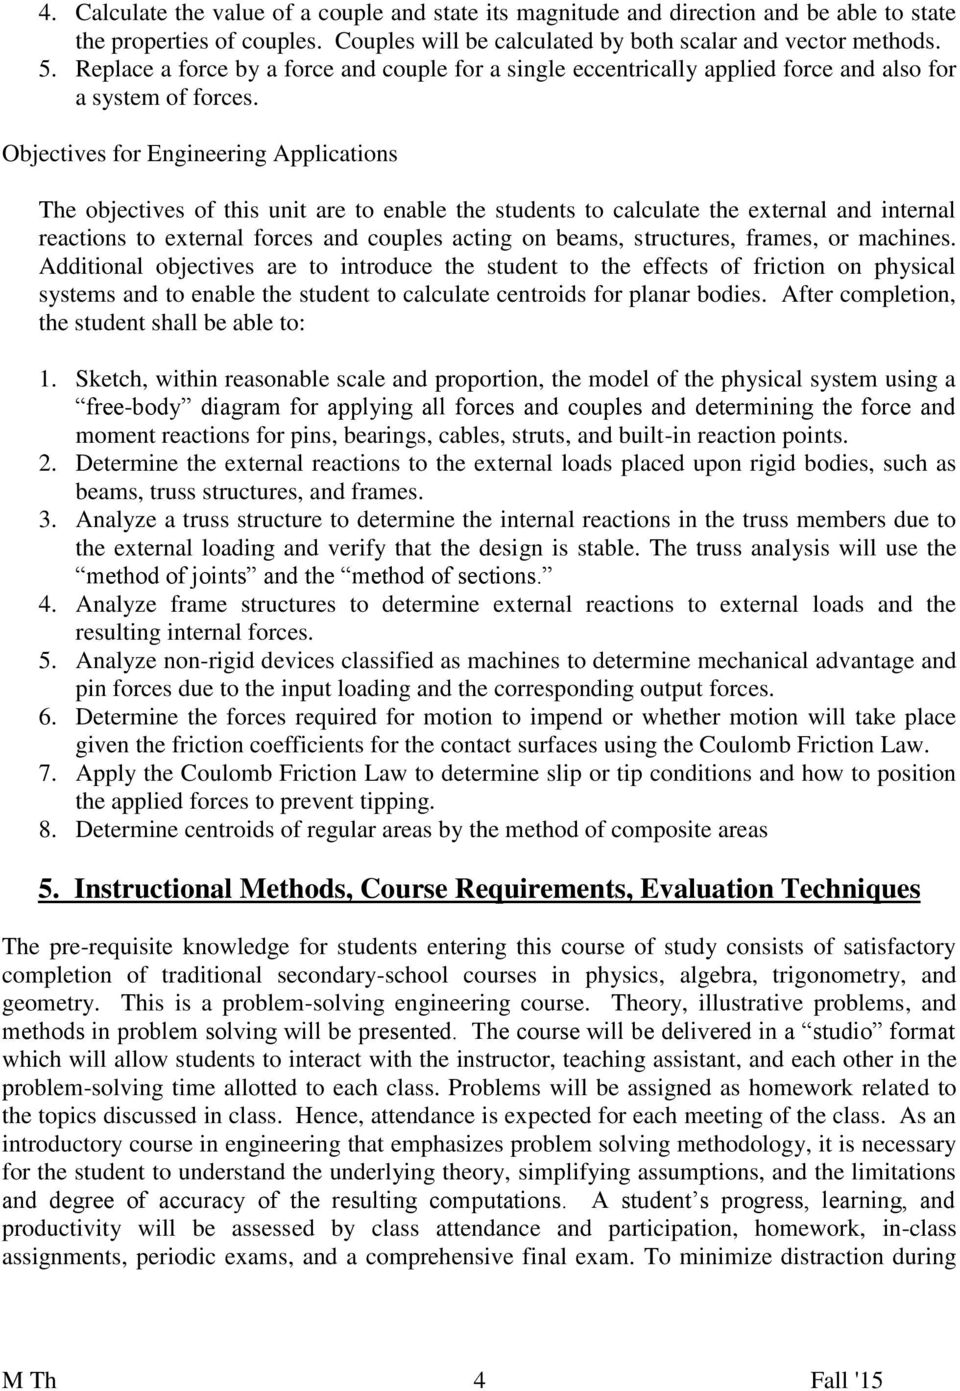 Objectives for Engineering Applications The objectives of this unit are to enable the students to calculate the external and internal reactions to external forces and couples acting on beams,